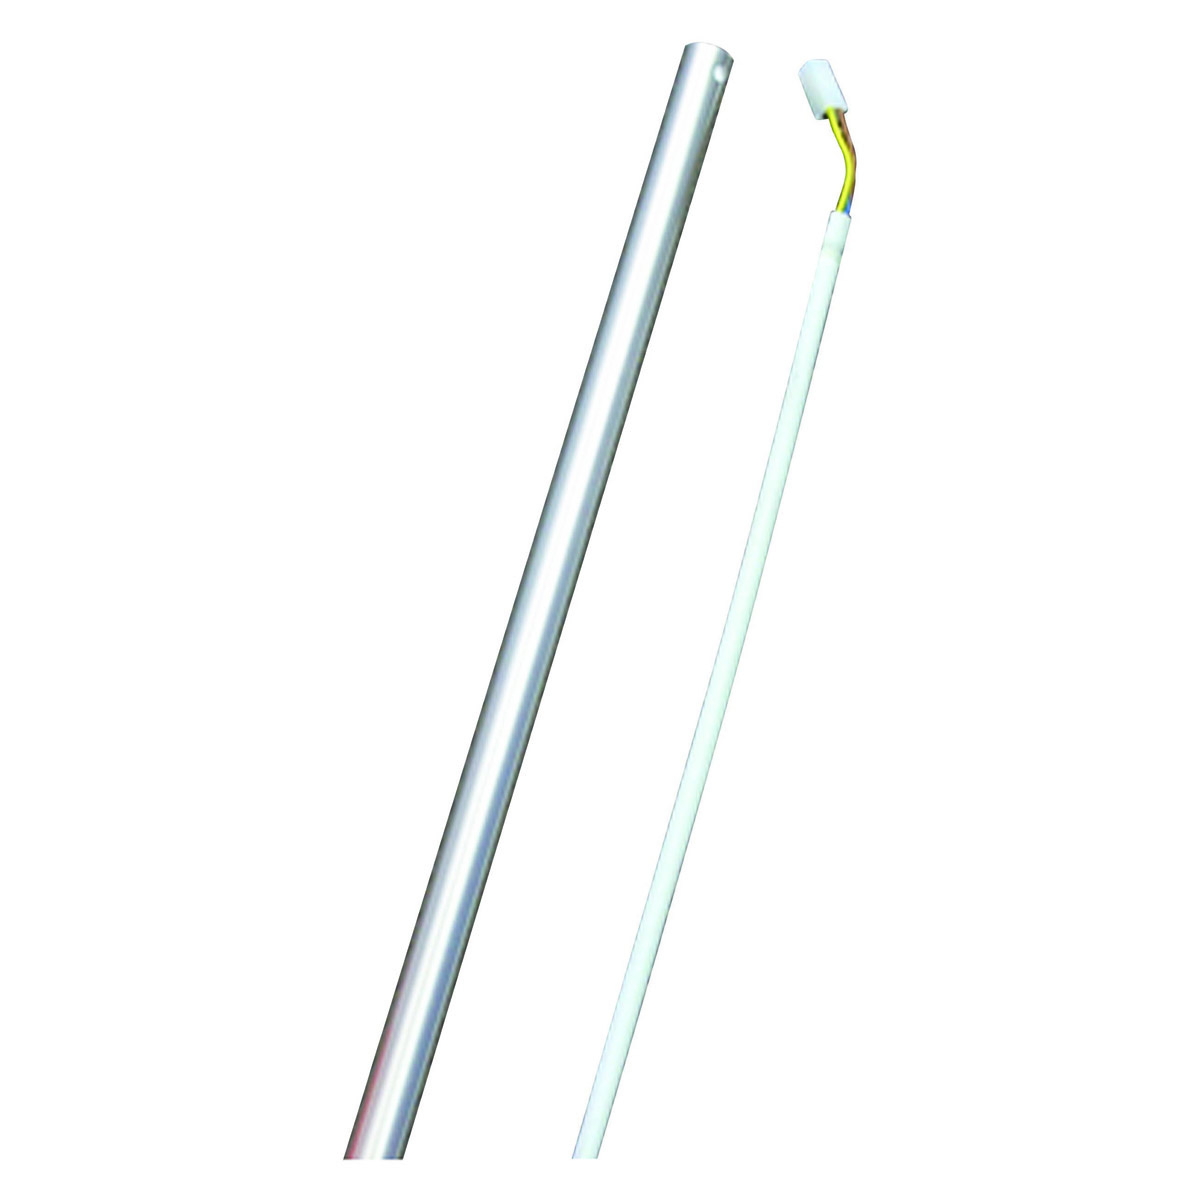 900mm brushed aluminum ceiling fan extension rod with wiring loom 900mm brushed aluminium ceiling fan extension rod dr36b aloadofball Gallery